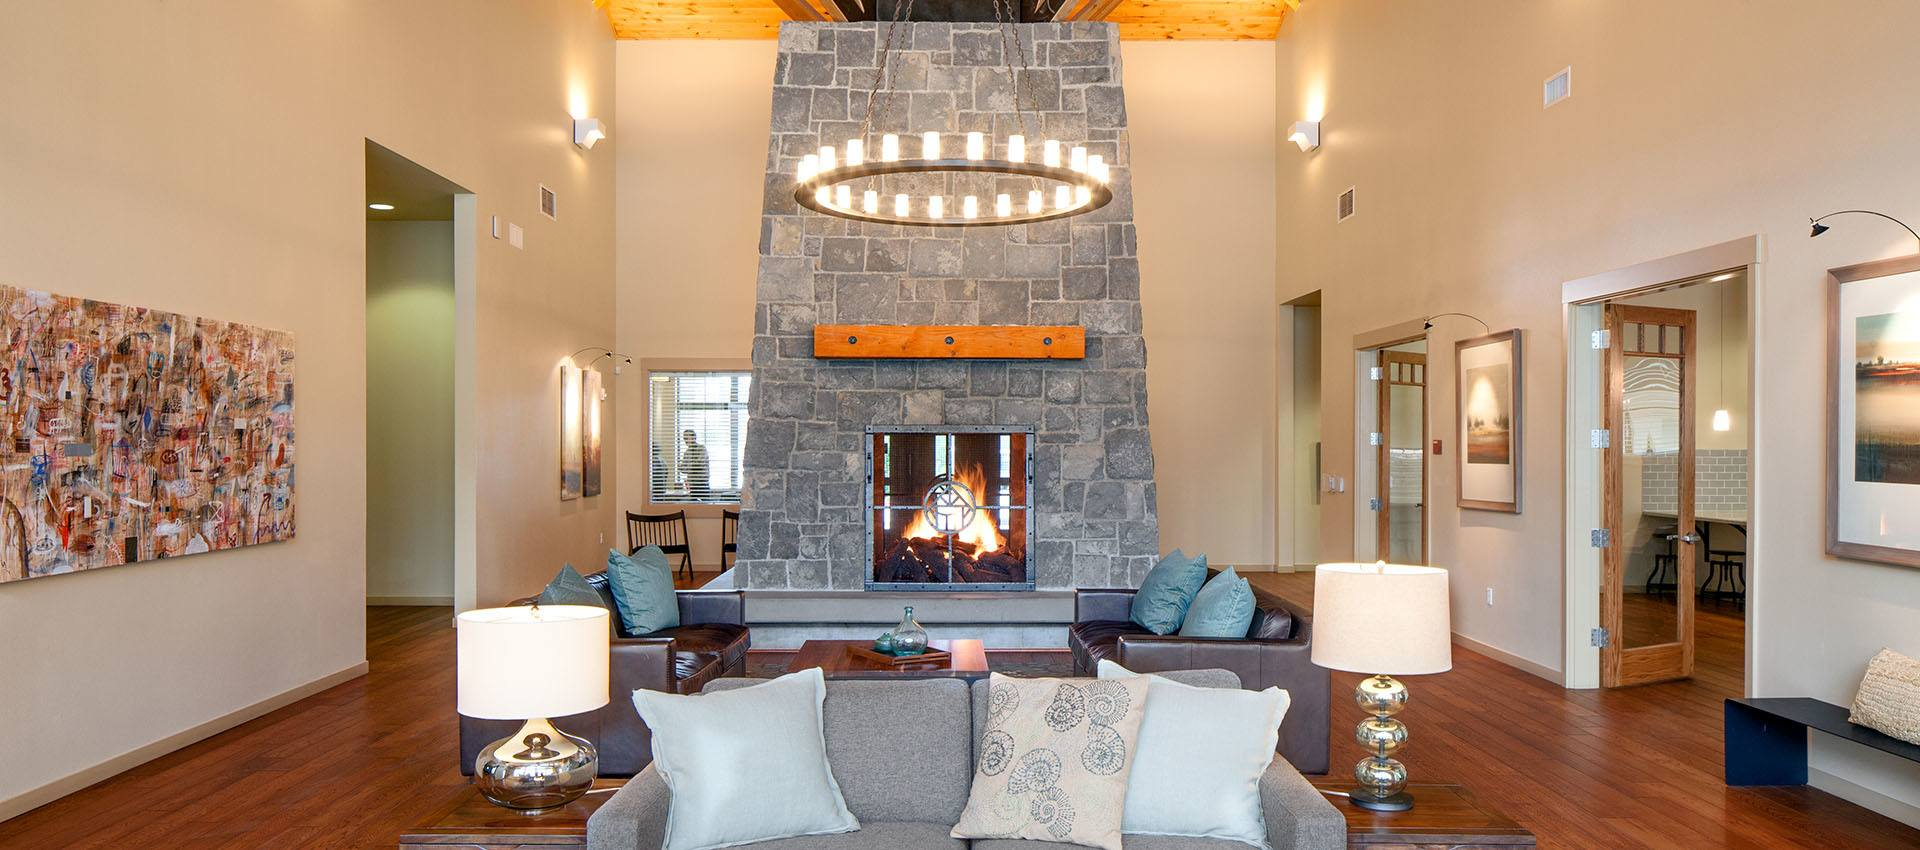 Clubhouse with stone fireplace at Eddyline at Bridgeport in Portland, OR